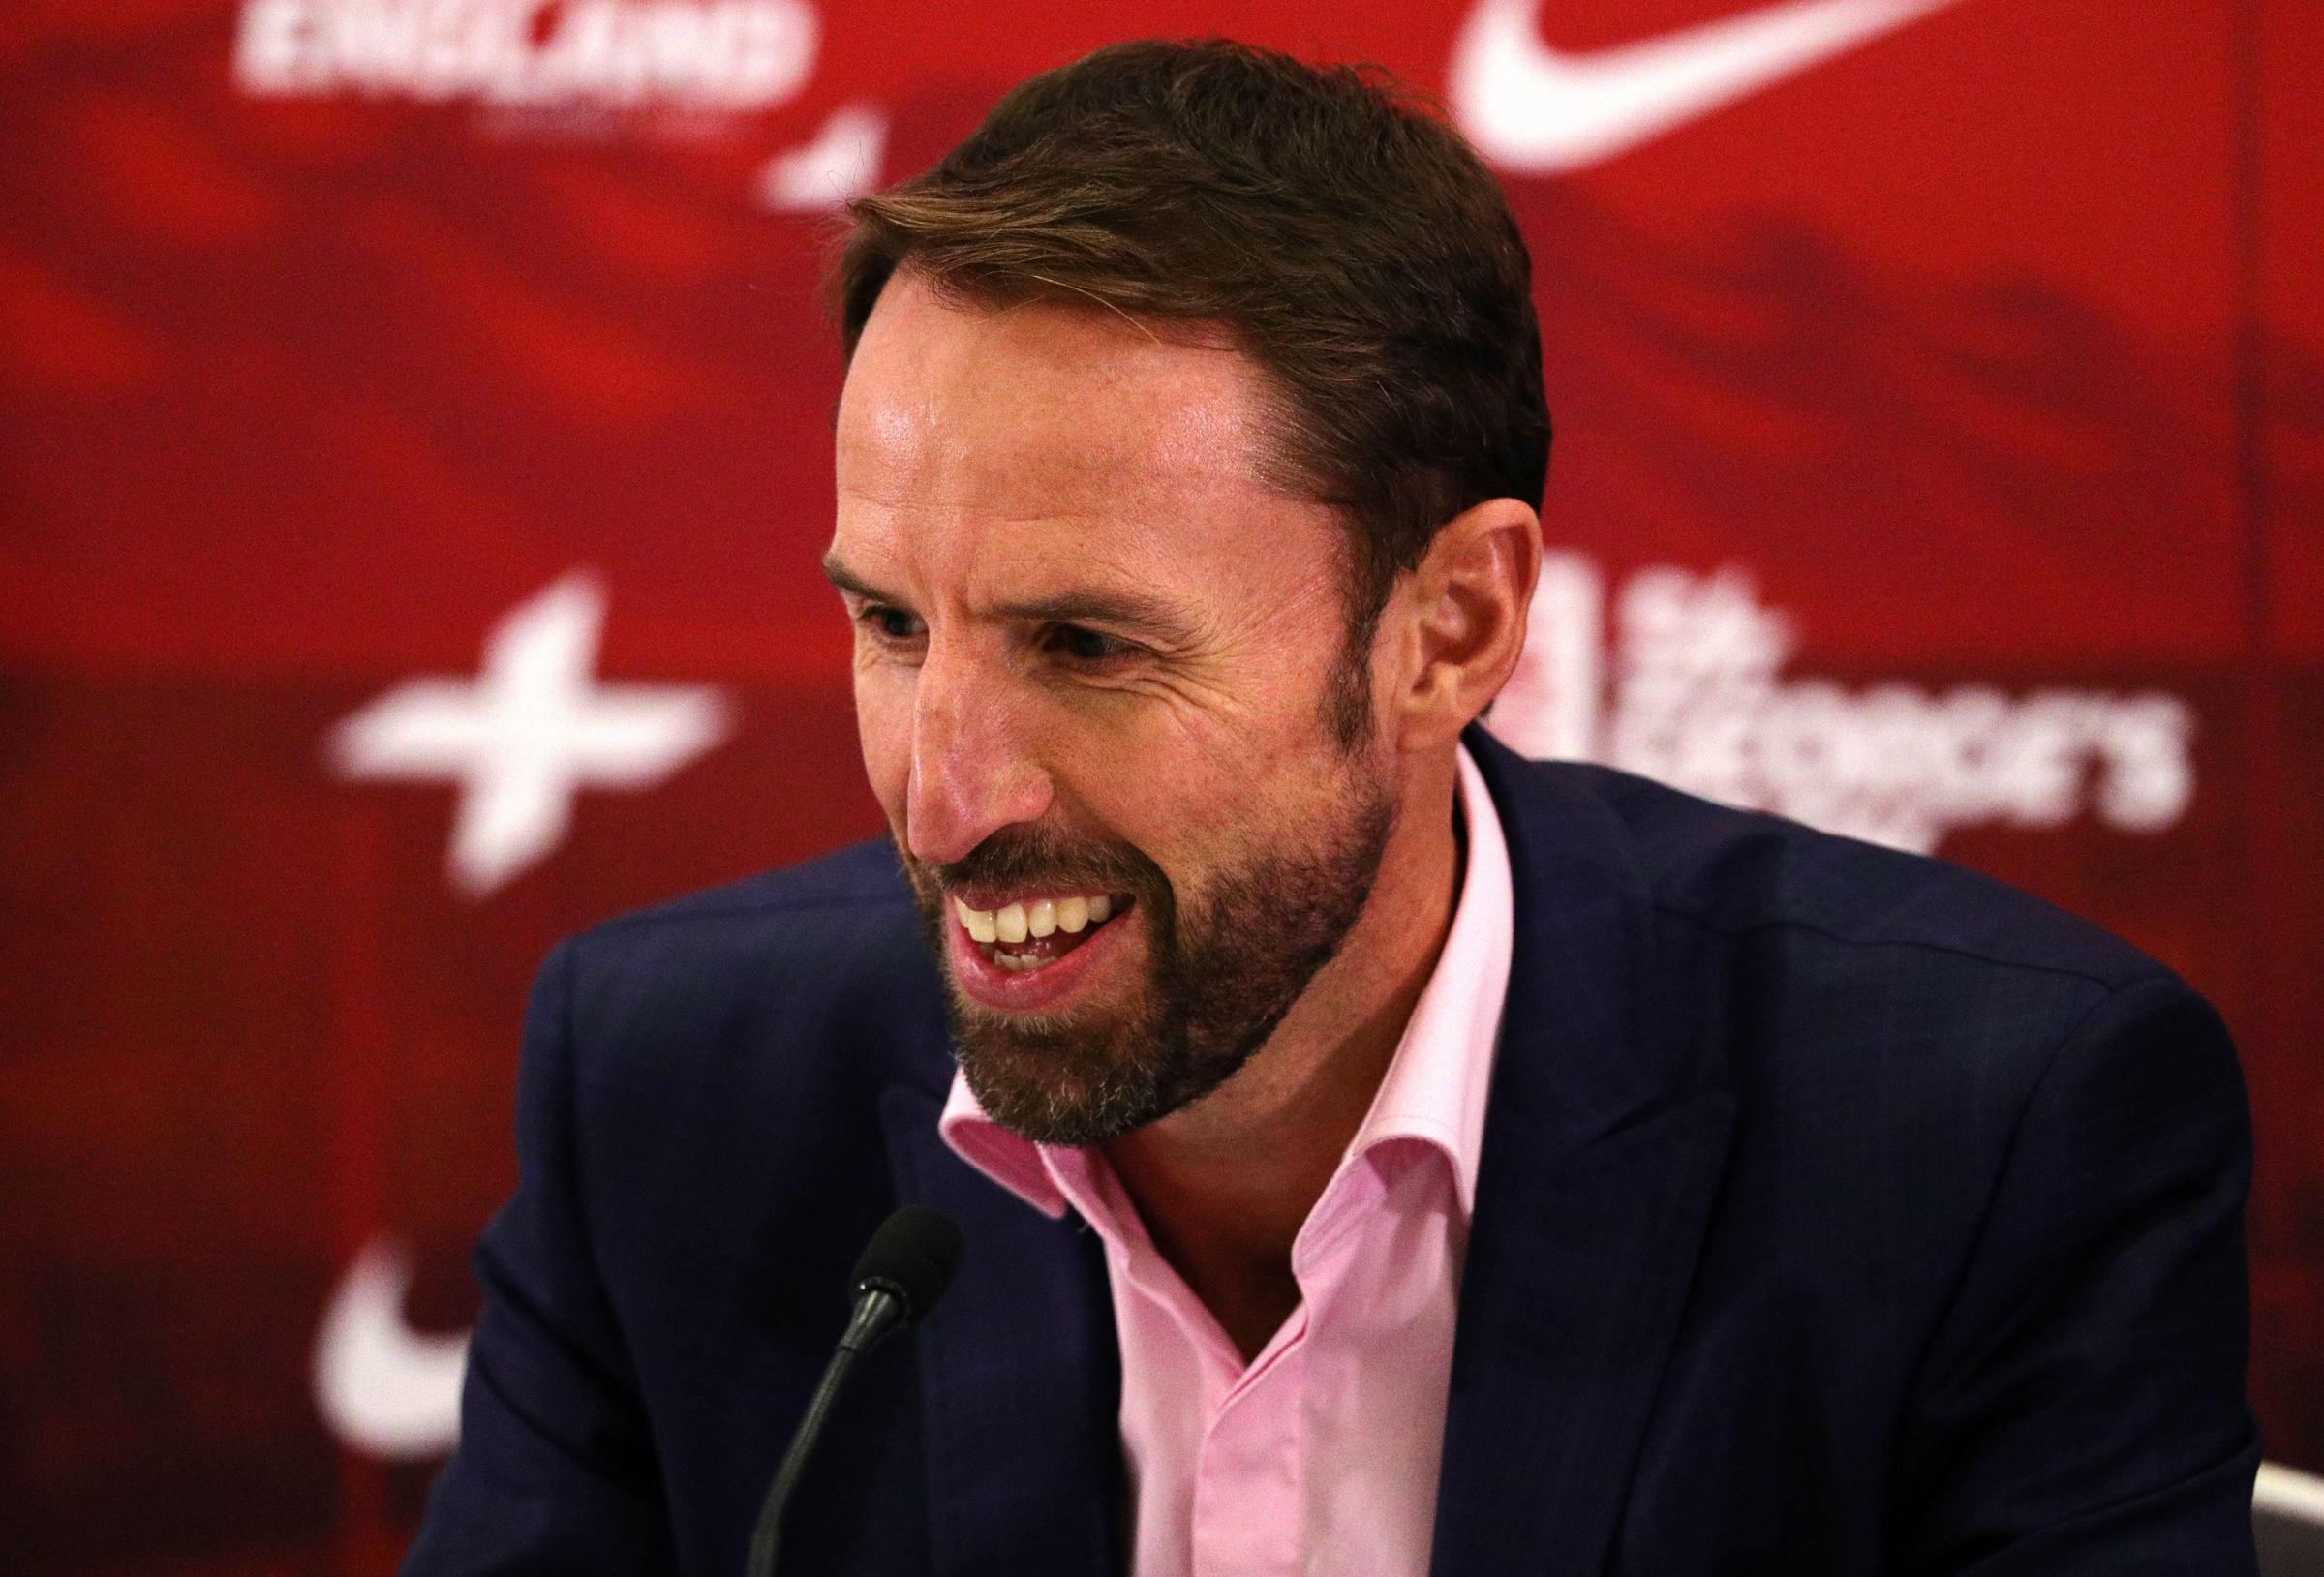 England Manager Gareth Southgate during the press conference at St George's Park, Burton. PRESS ASSOCIATION Photo. Picture date: Thursday August 30, 2018. See PA story SOCCER England. Photo credit should read: Aaron Chown/PA Wire, RESTRICTIONS: Use su